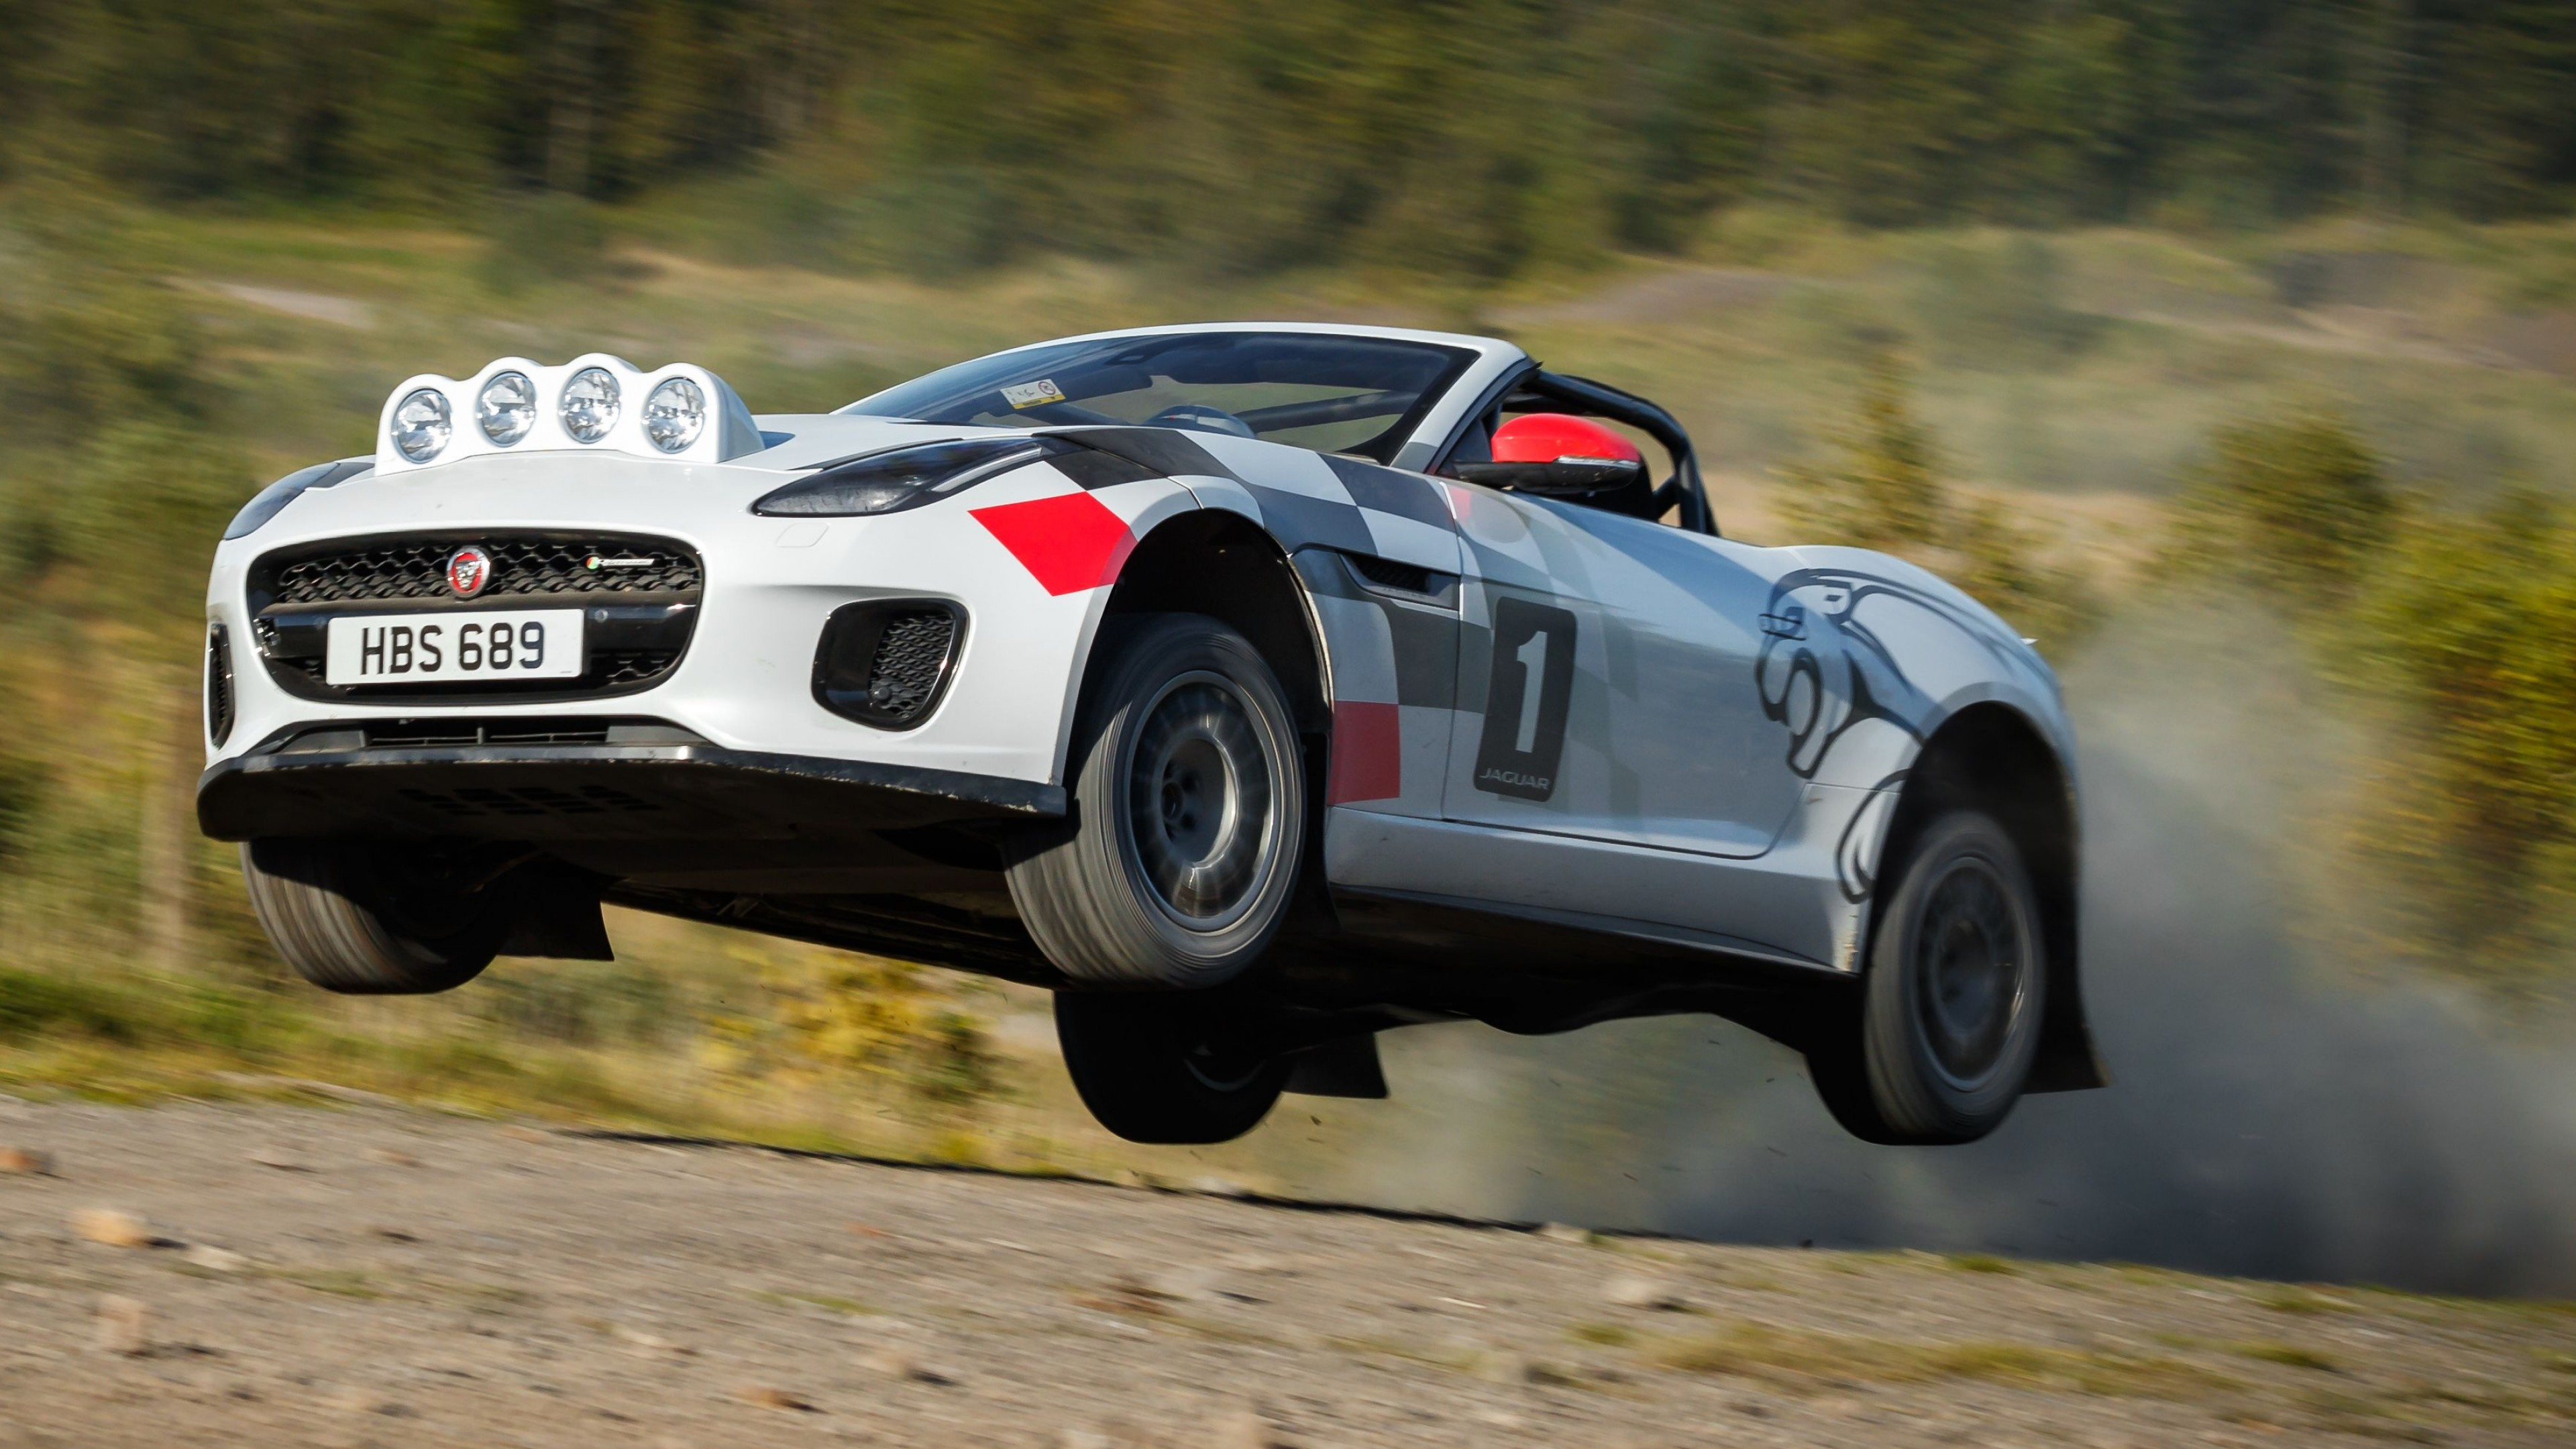 Wallpaper Jaguar F Type Rally Car 2018 Cars 4k Cars Bikes 20899